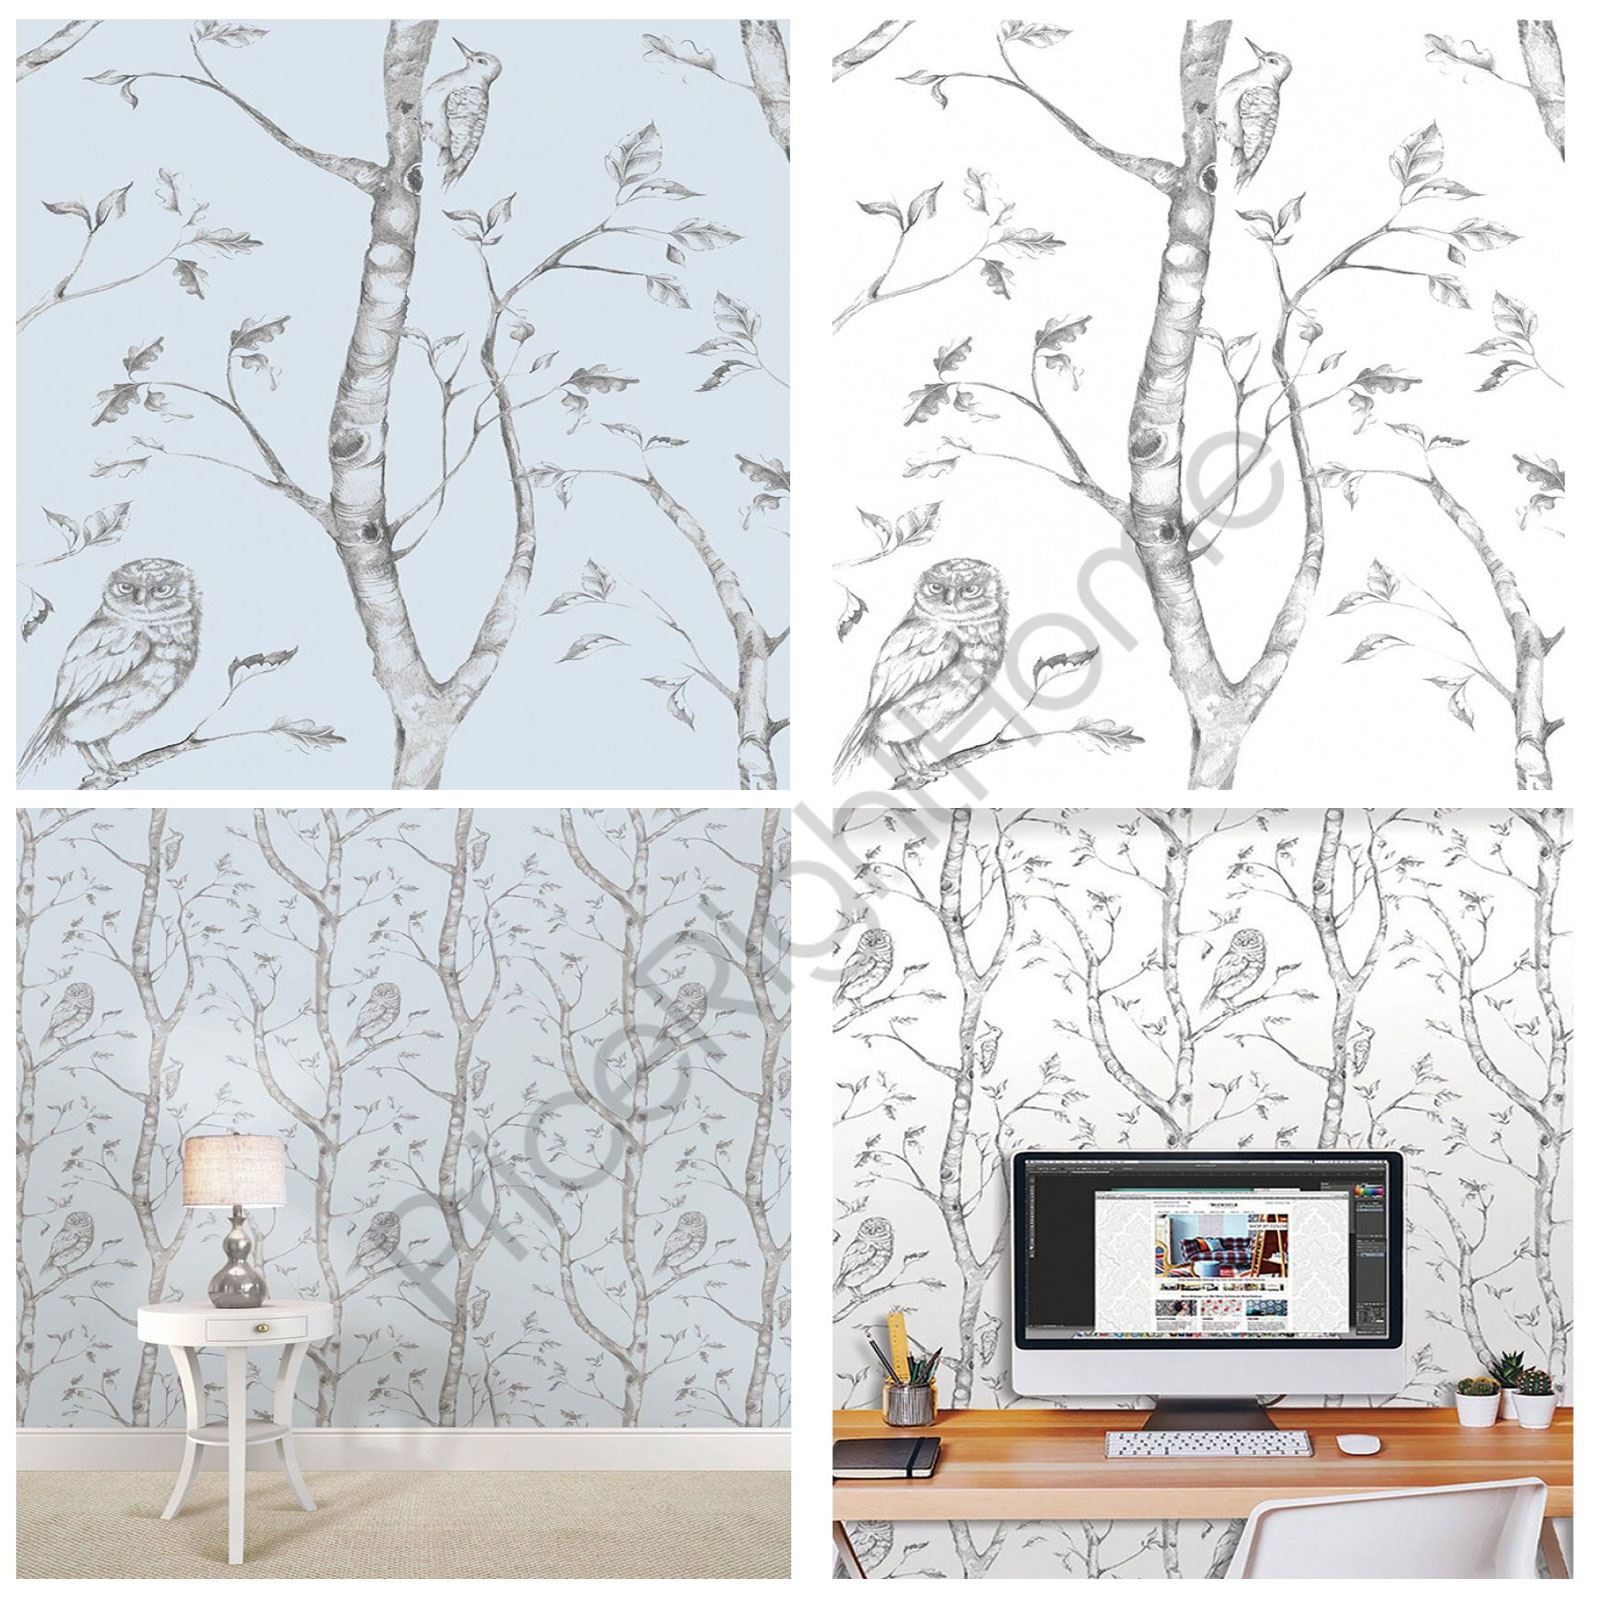 Details about WOODS PEEL & STICK BEDROOM WALLPAPER WALL DECOR BLUE & GREY  NEW